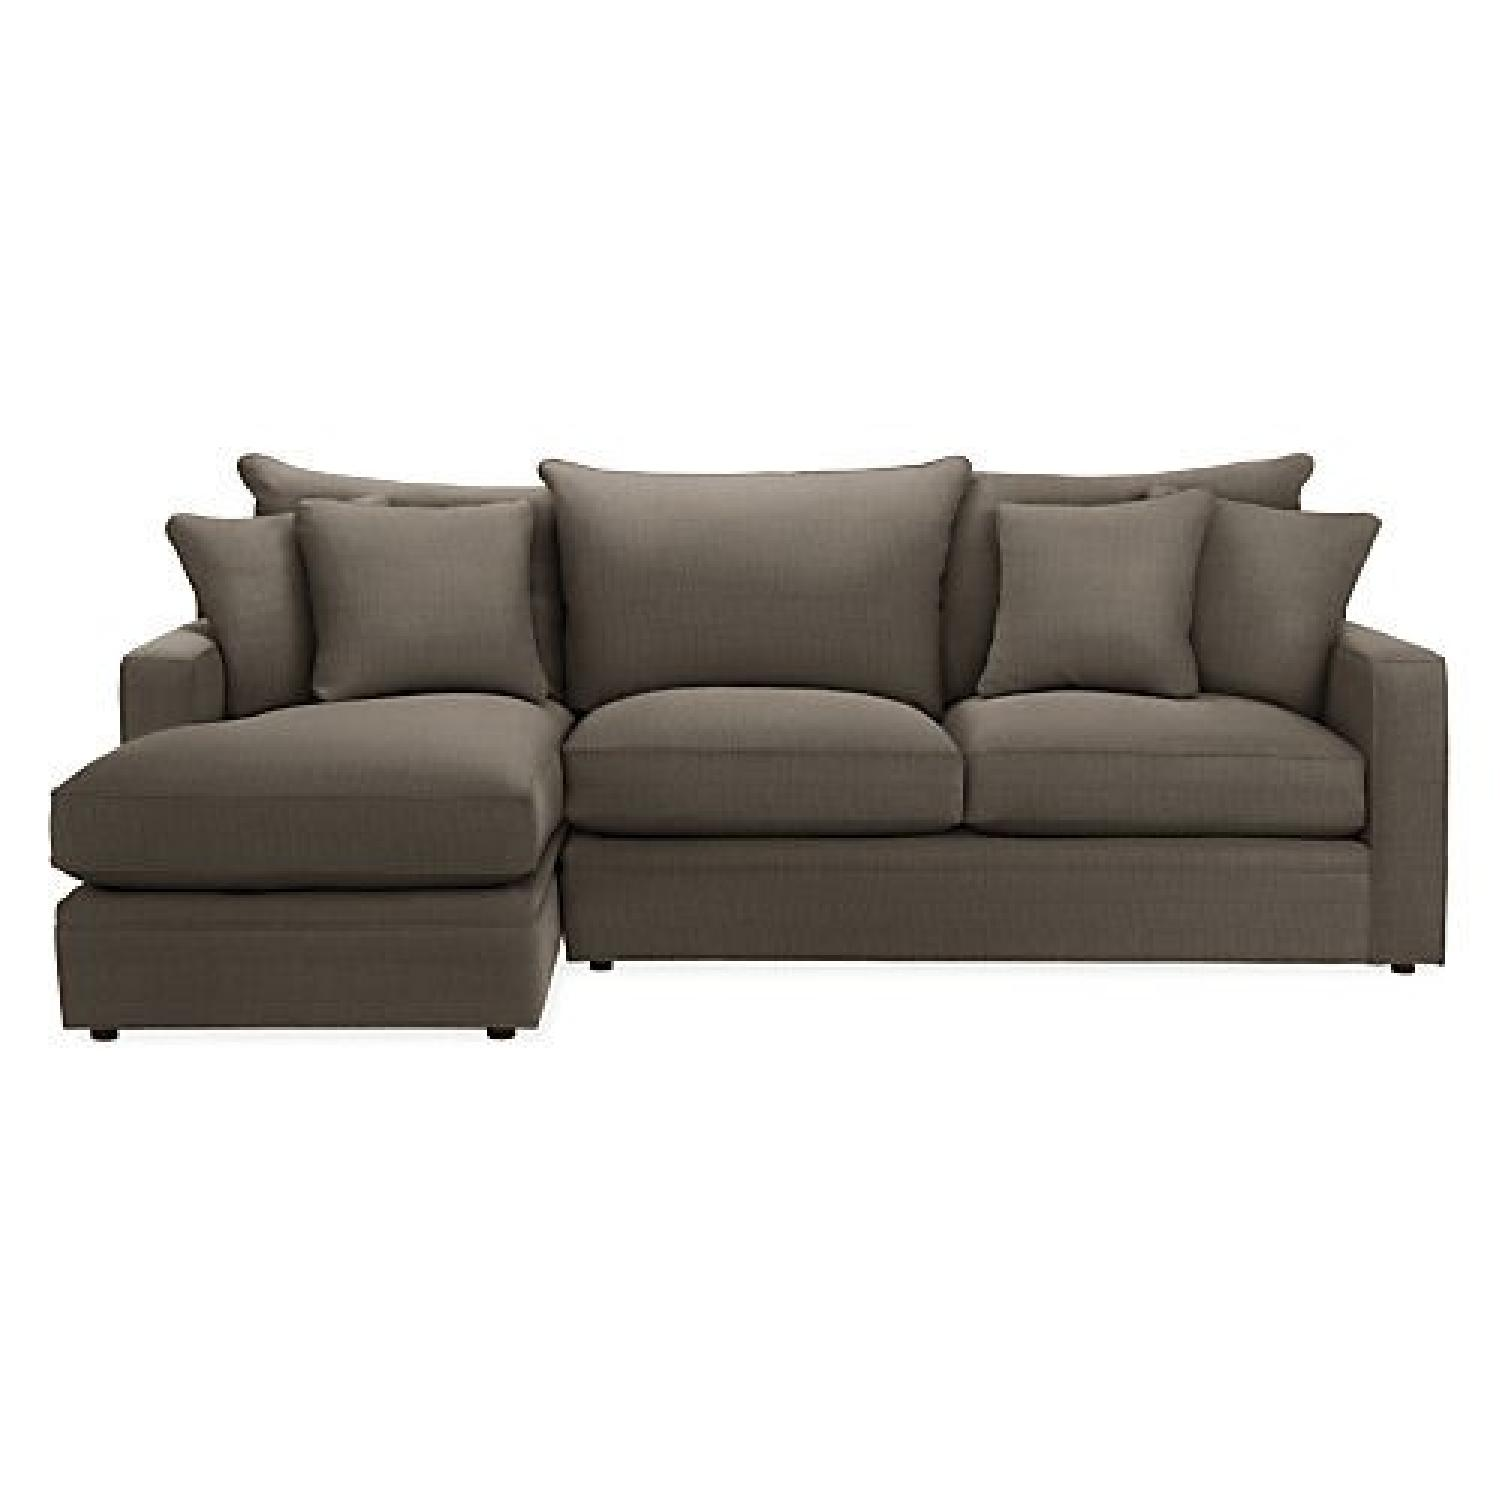 Room & Board Orson Sectional Sofa w/ Chaise